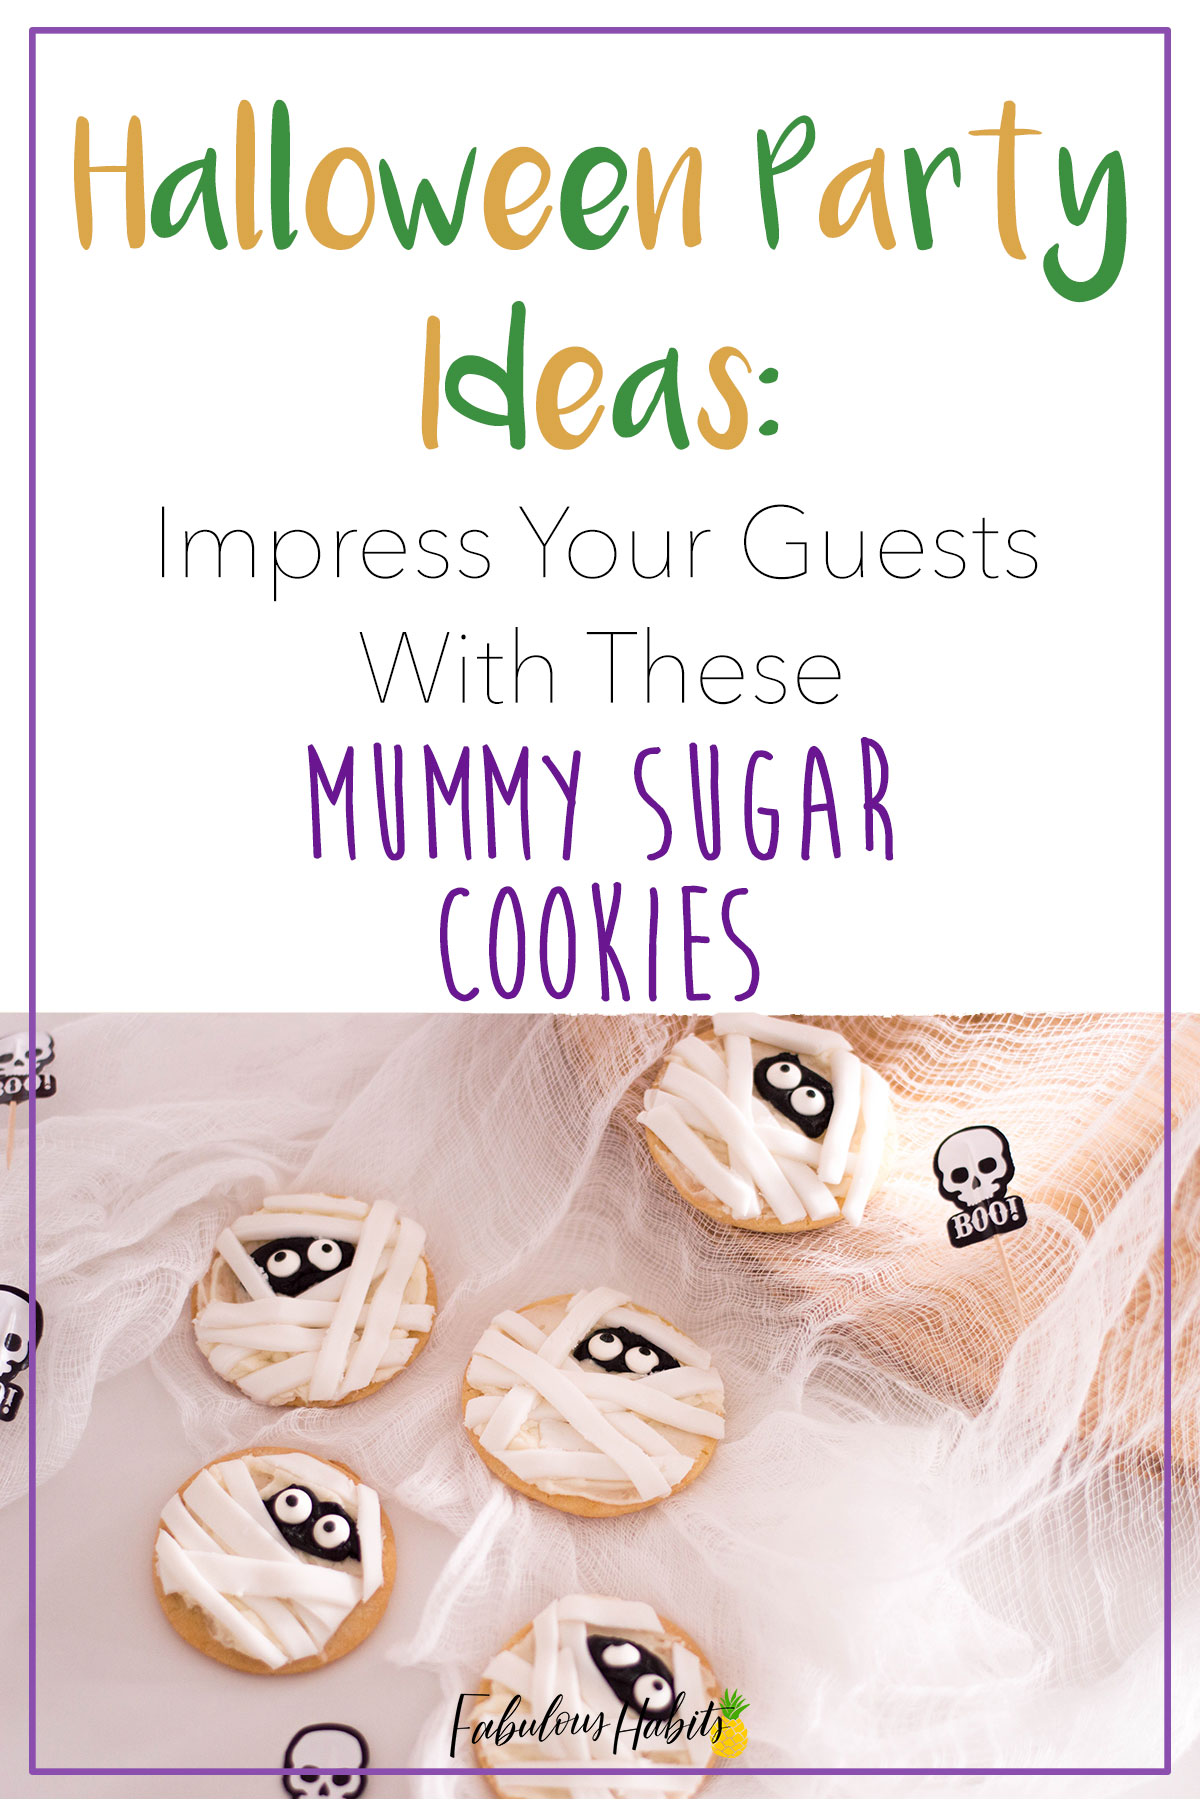 It's time to get into the Halloween spirit! These mummy sugar cookies will be the perfect addition to any Halloween sweet table. How will you be celebrating the spookiest time of the year? #halloweenrecipes